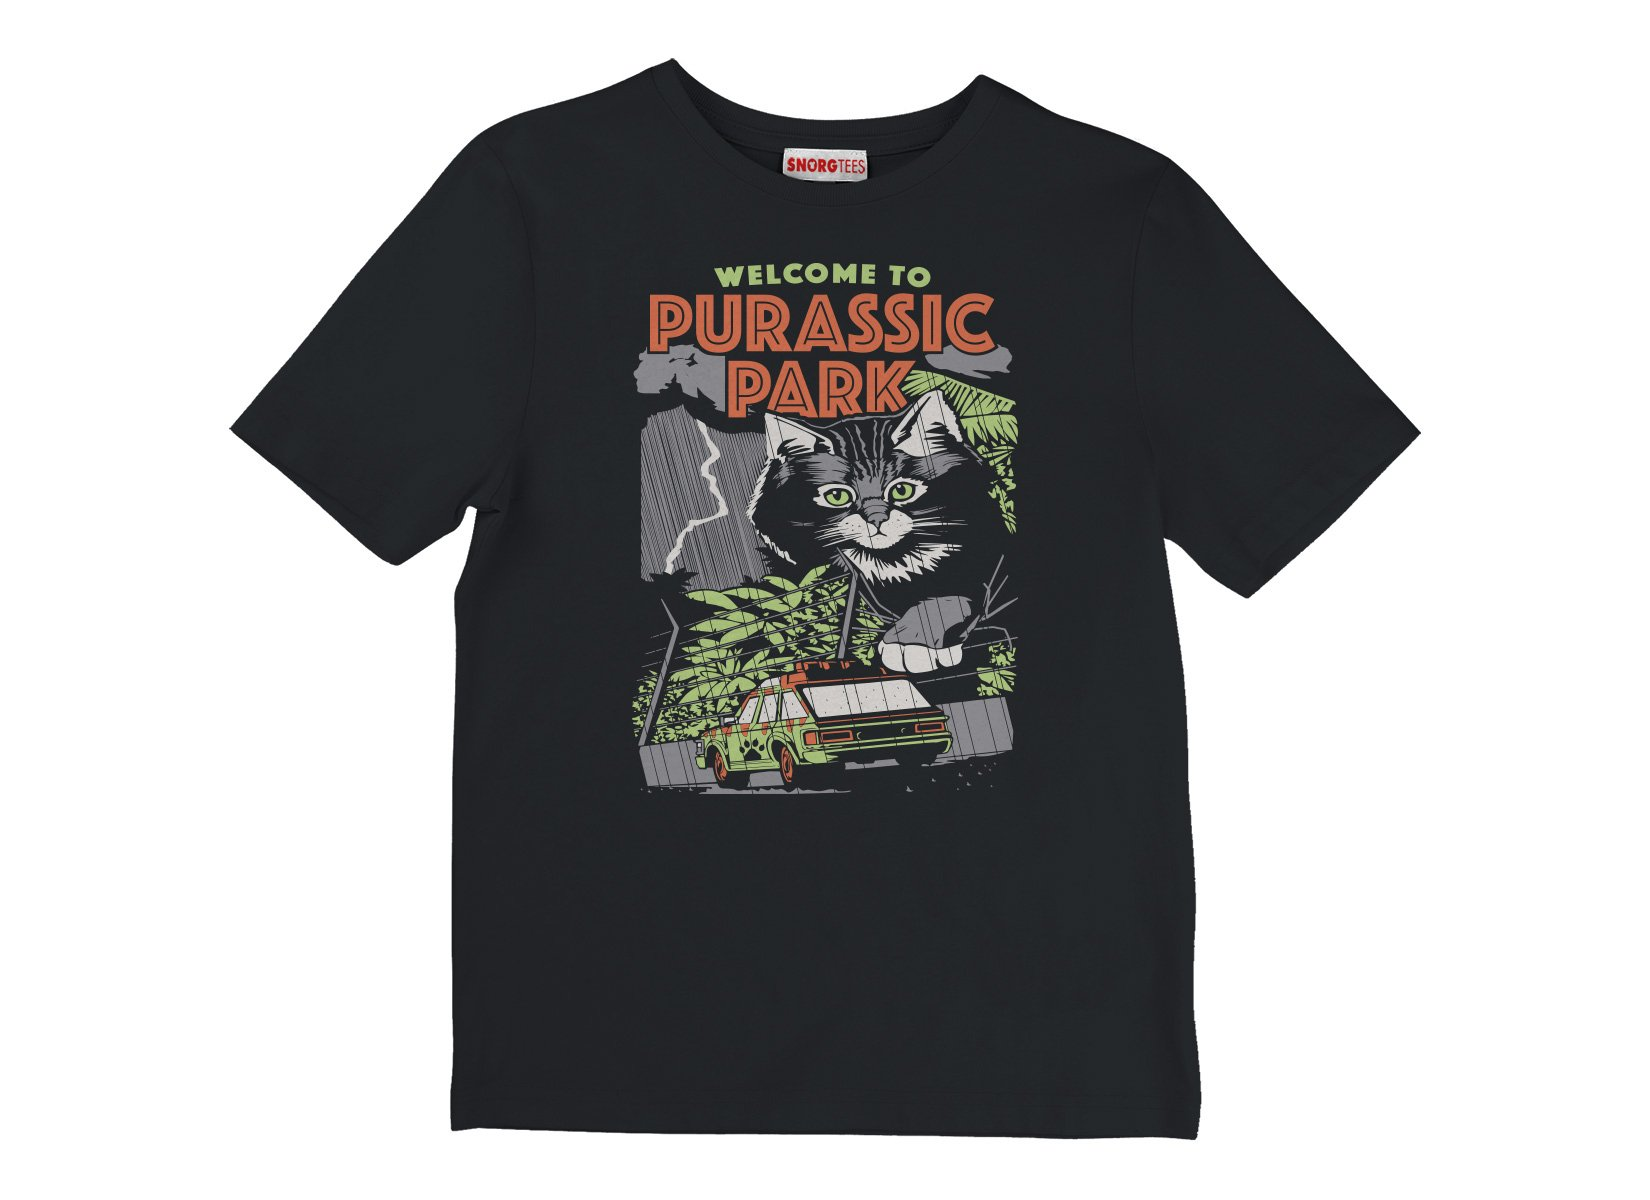 Purassic Park on Kids T-Shirt